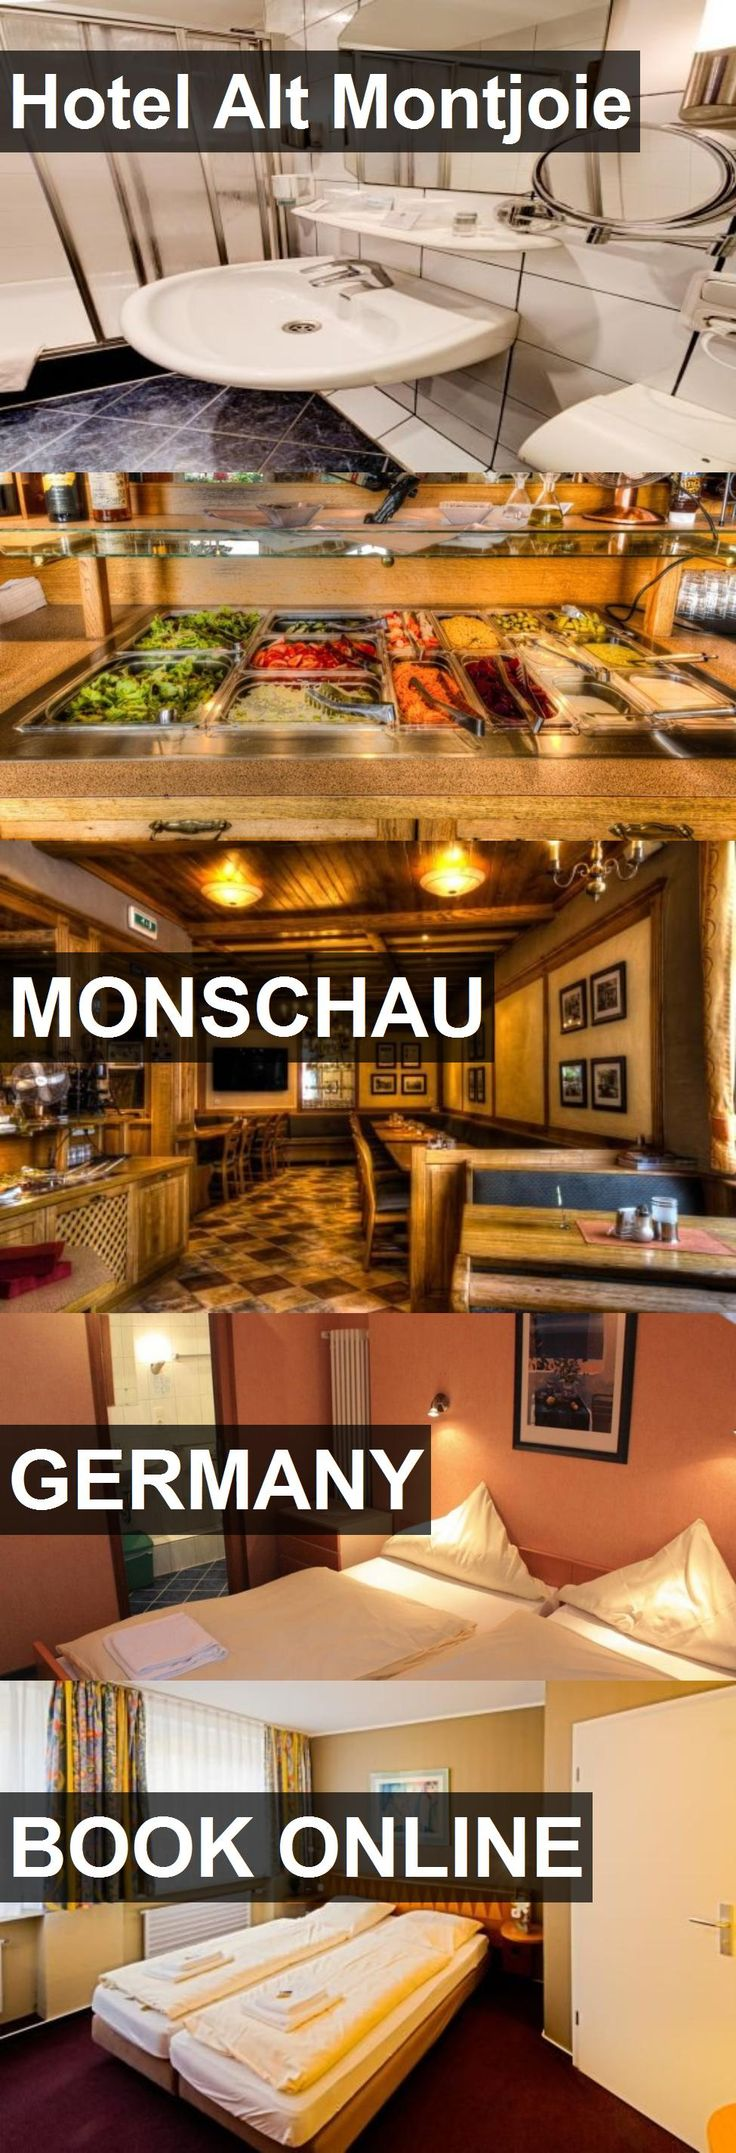 Hotel Alt Montjoie in Monschau, Germany. For more information, photos, reviews and best prices please follow the link. #Germany #Monschau #travel #vacation #hotel